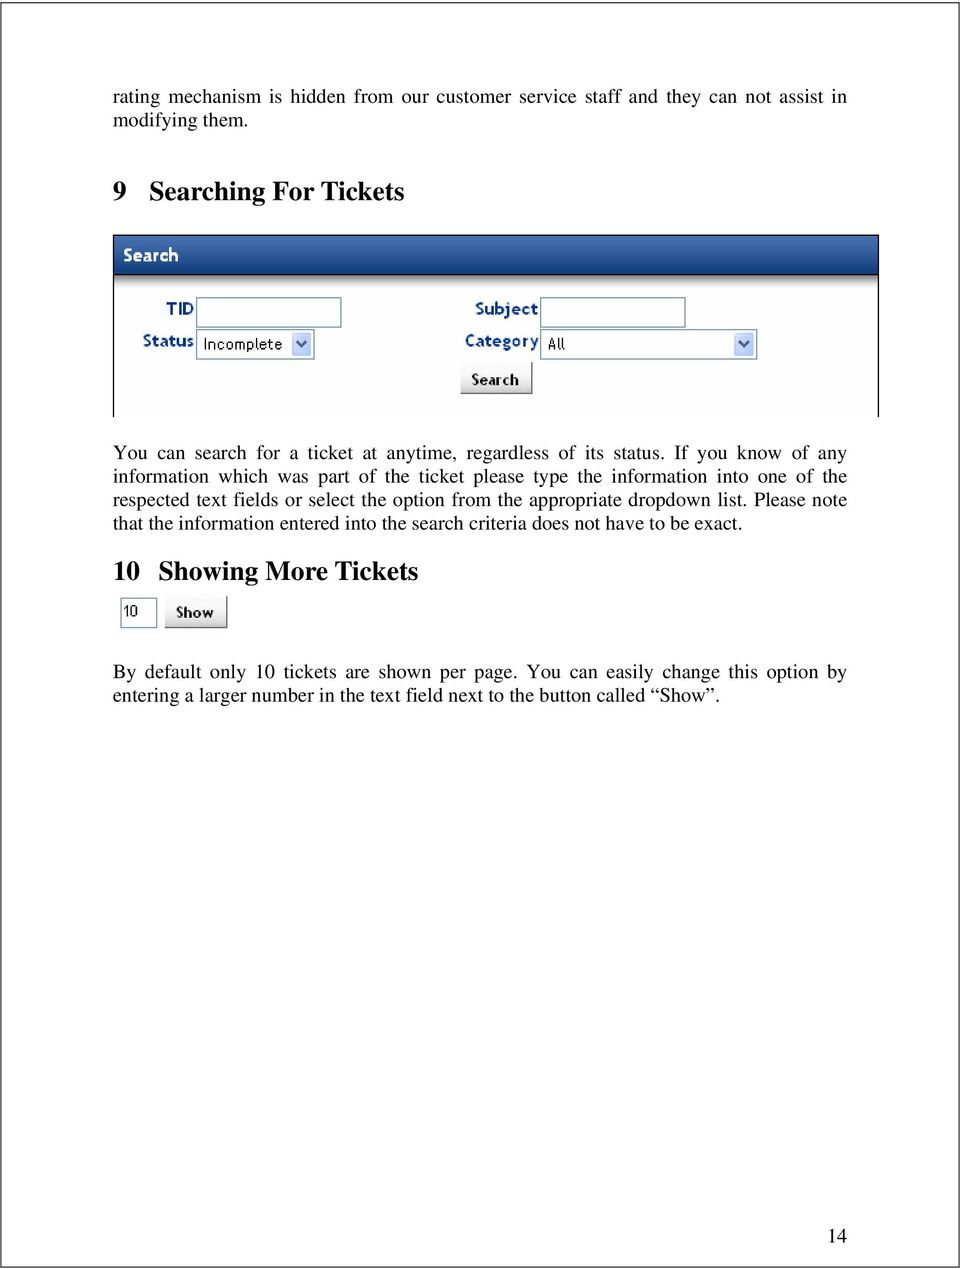 If you know of any information which was part of the ticket please type the information into one of the respected text fields or select the option from the